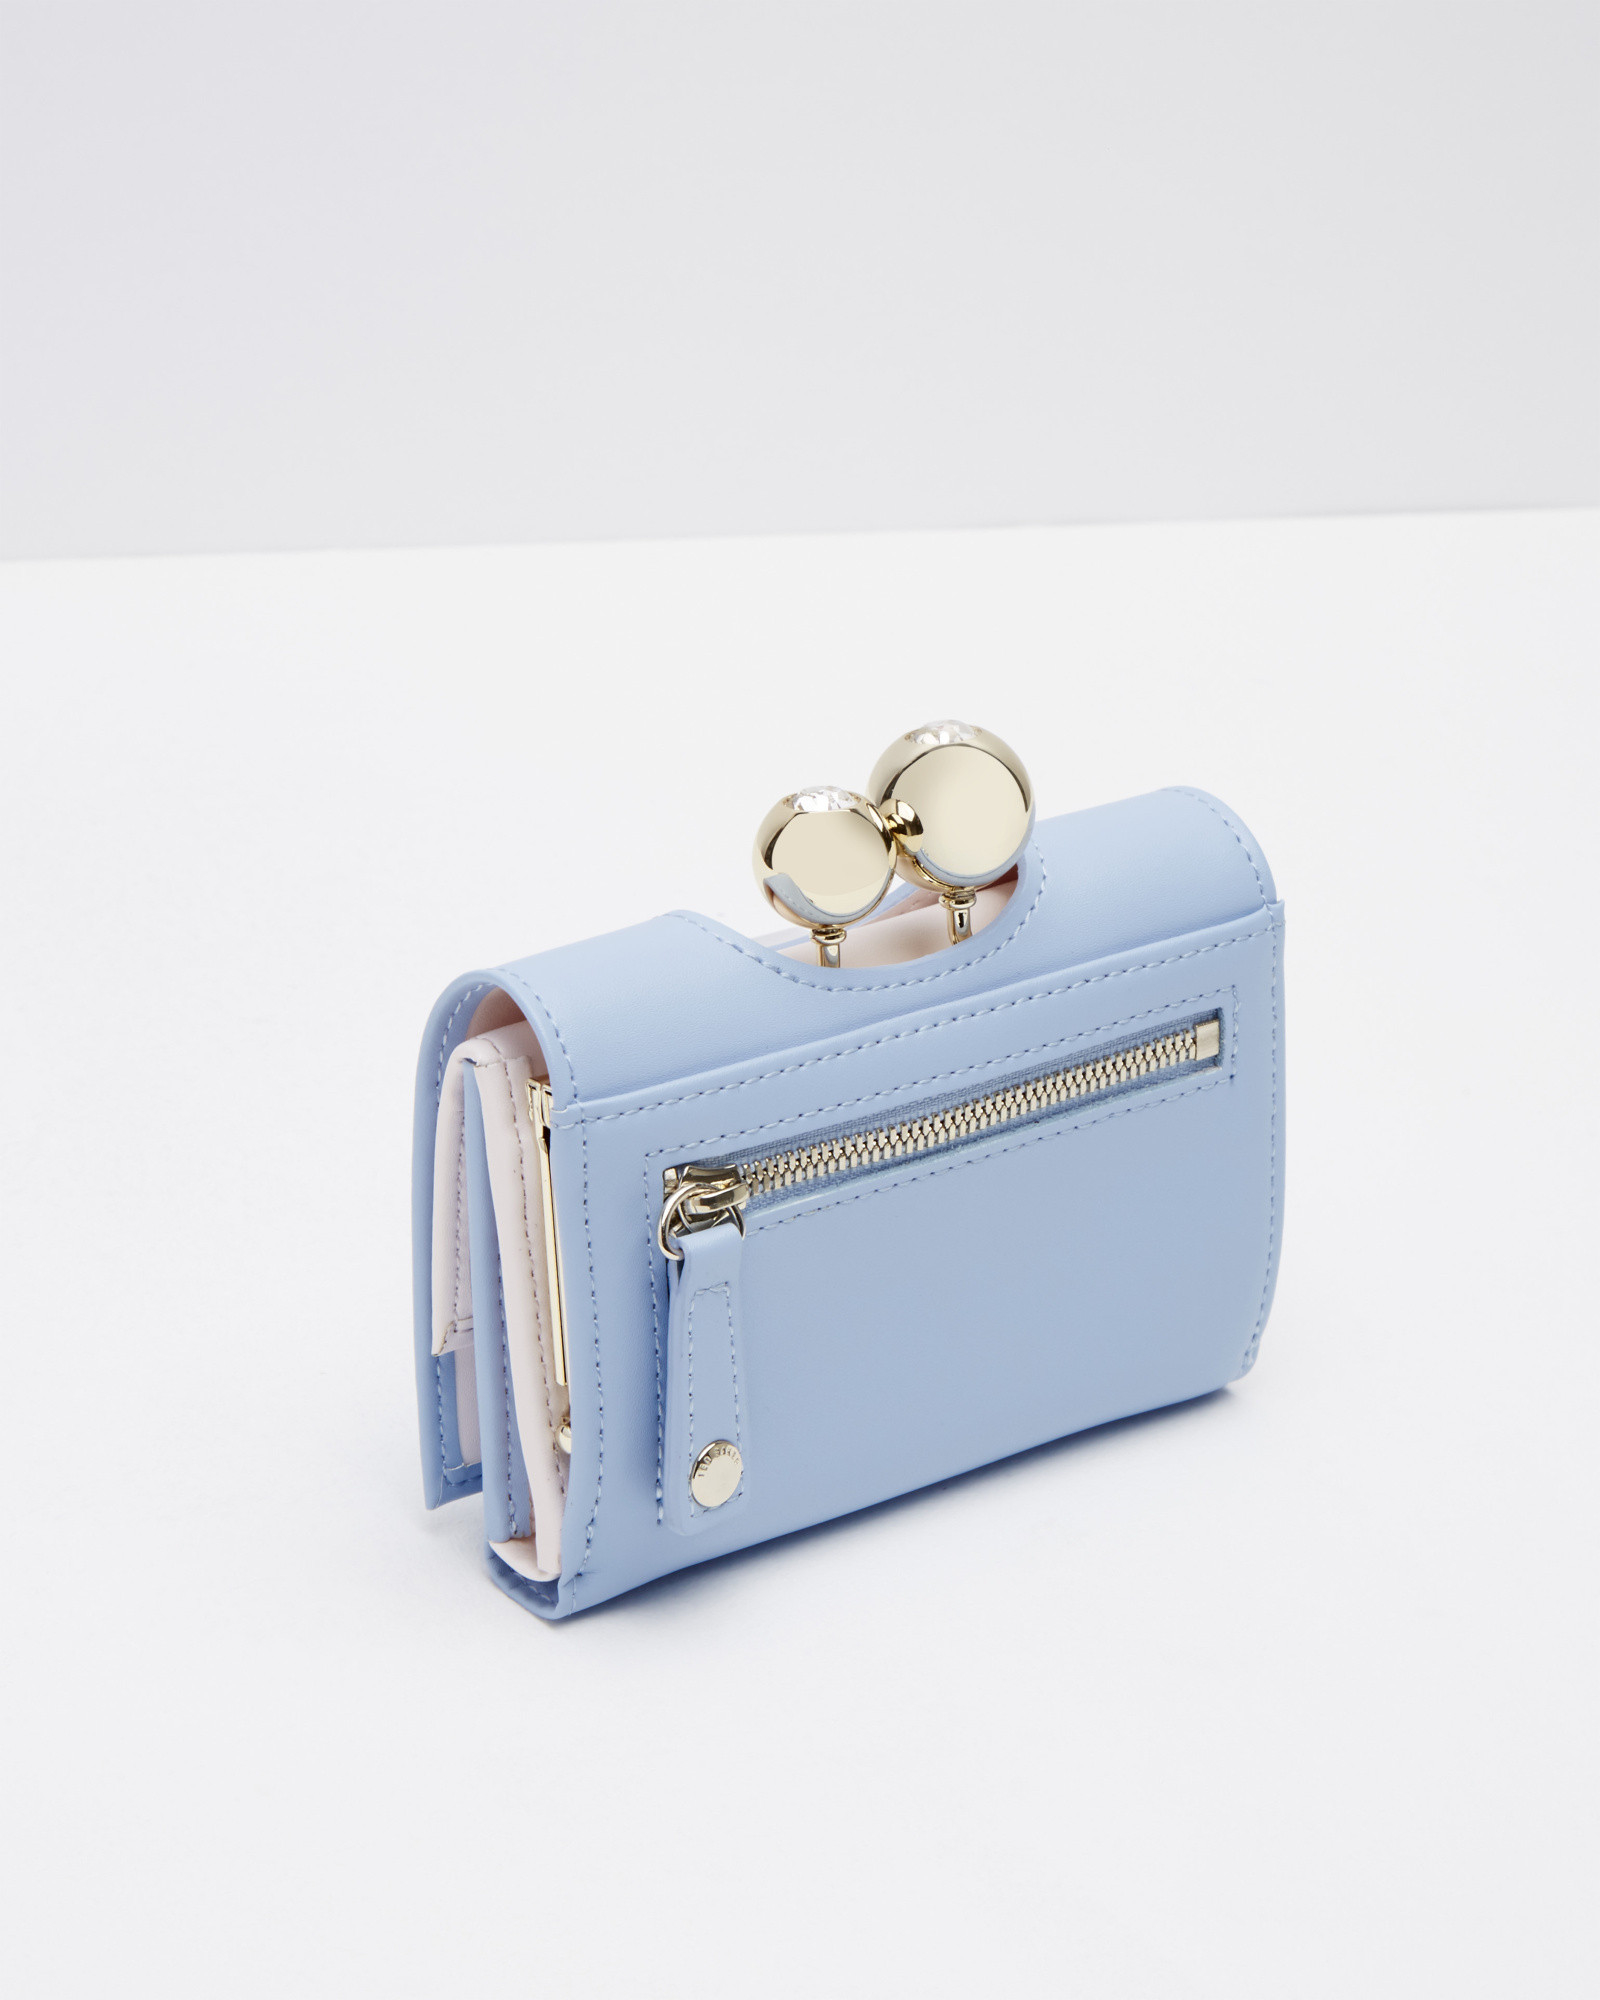 bb1d2857c8a46 Lyst - Ted Baker Leather Crystal Bobble Small Purse in Blue